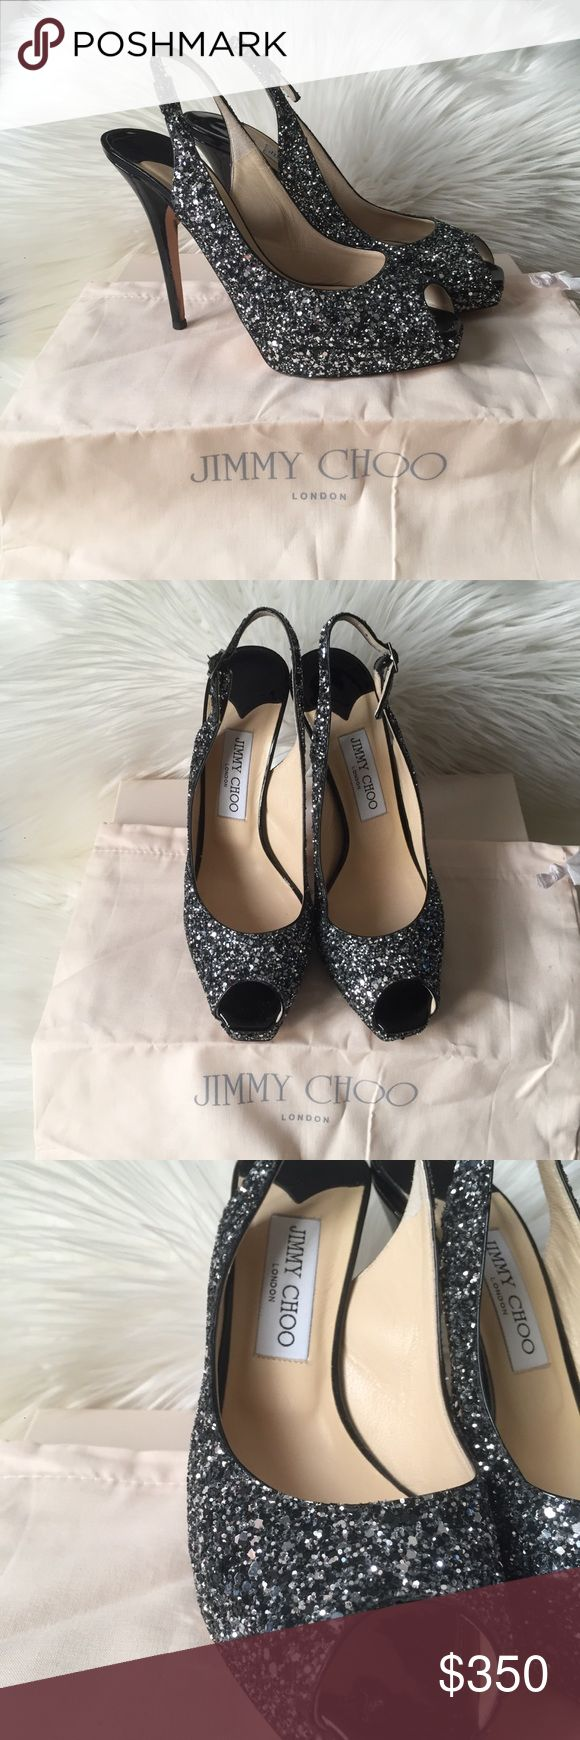 "Jimmy Choo Coarse Glitter Pero Toe Heels Black patent peep toe stiletto heels with glitter silver coat. In excellent preowned condition minimal wear on the sole and tiny scratch on the heel. Comes with dust bag and box. Heel measures 4.75"" & 1"" platform Jimmy Choo Shoes Heels"